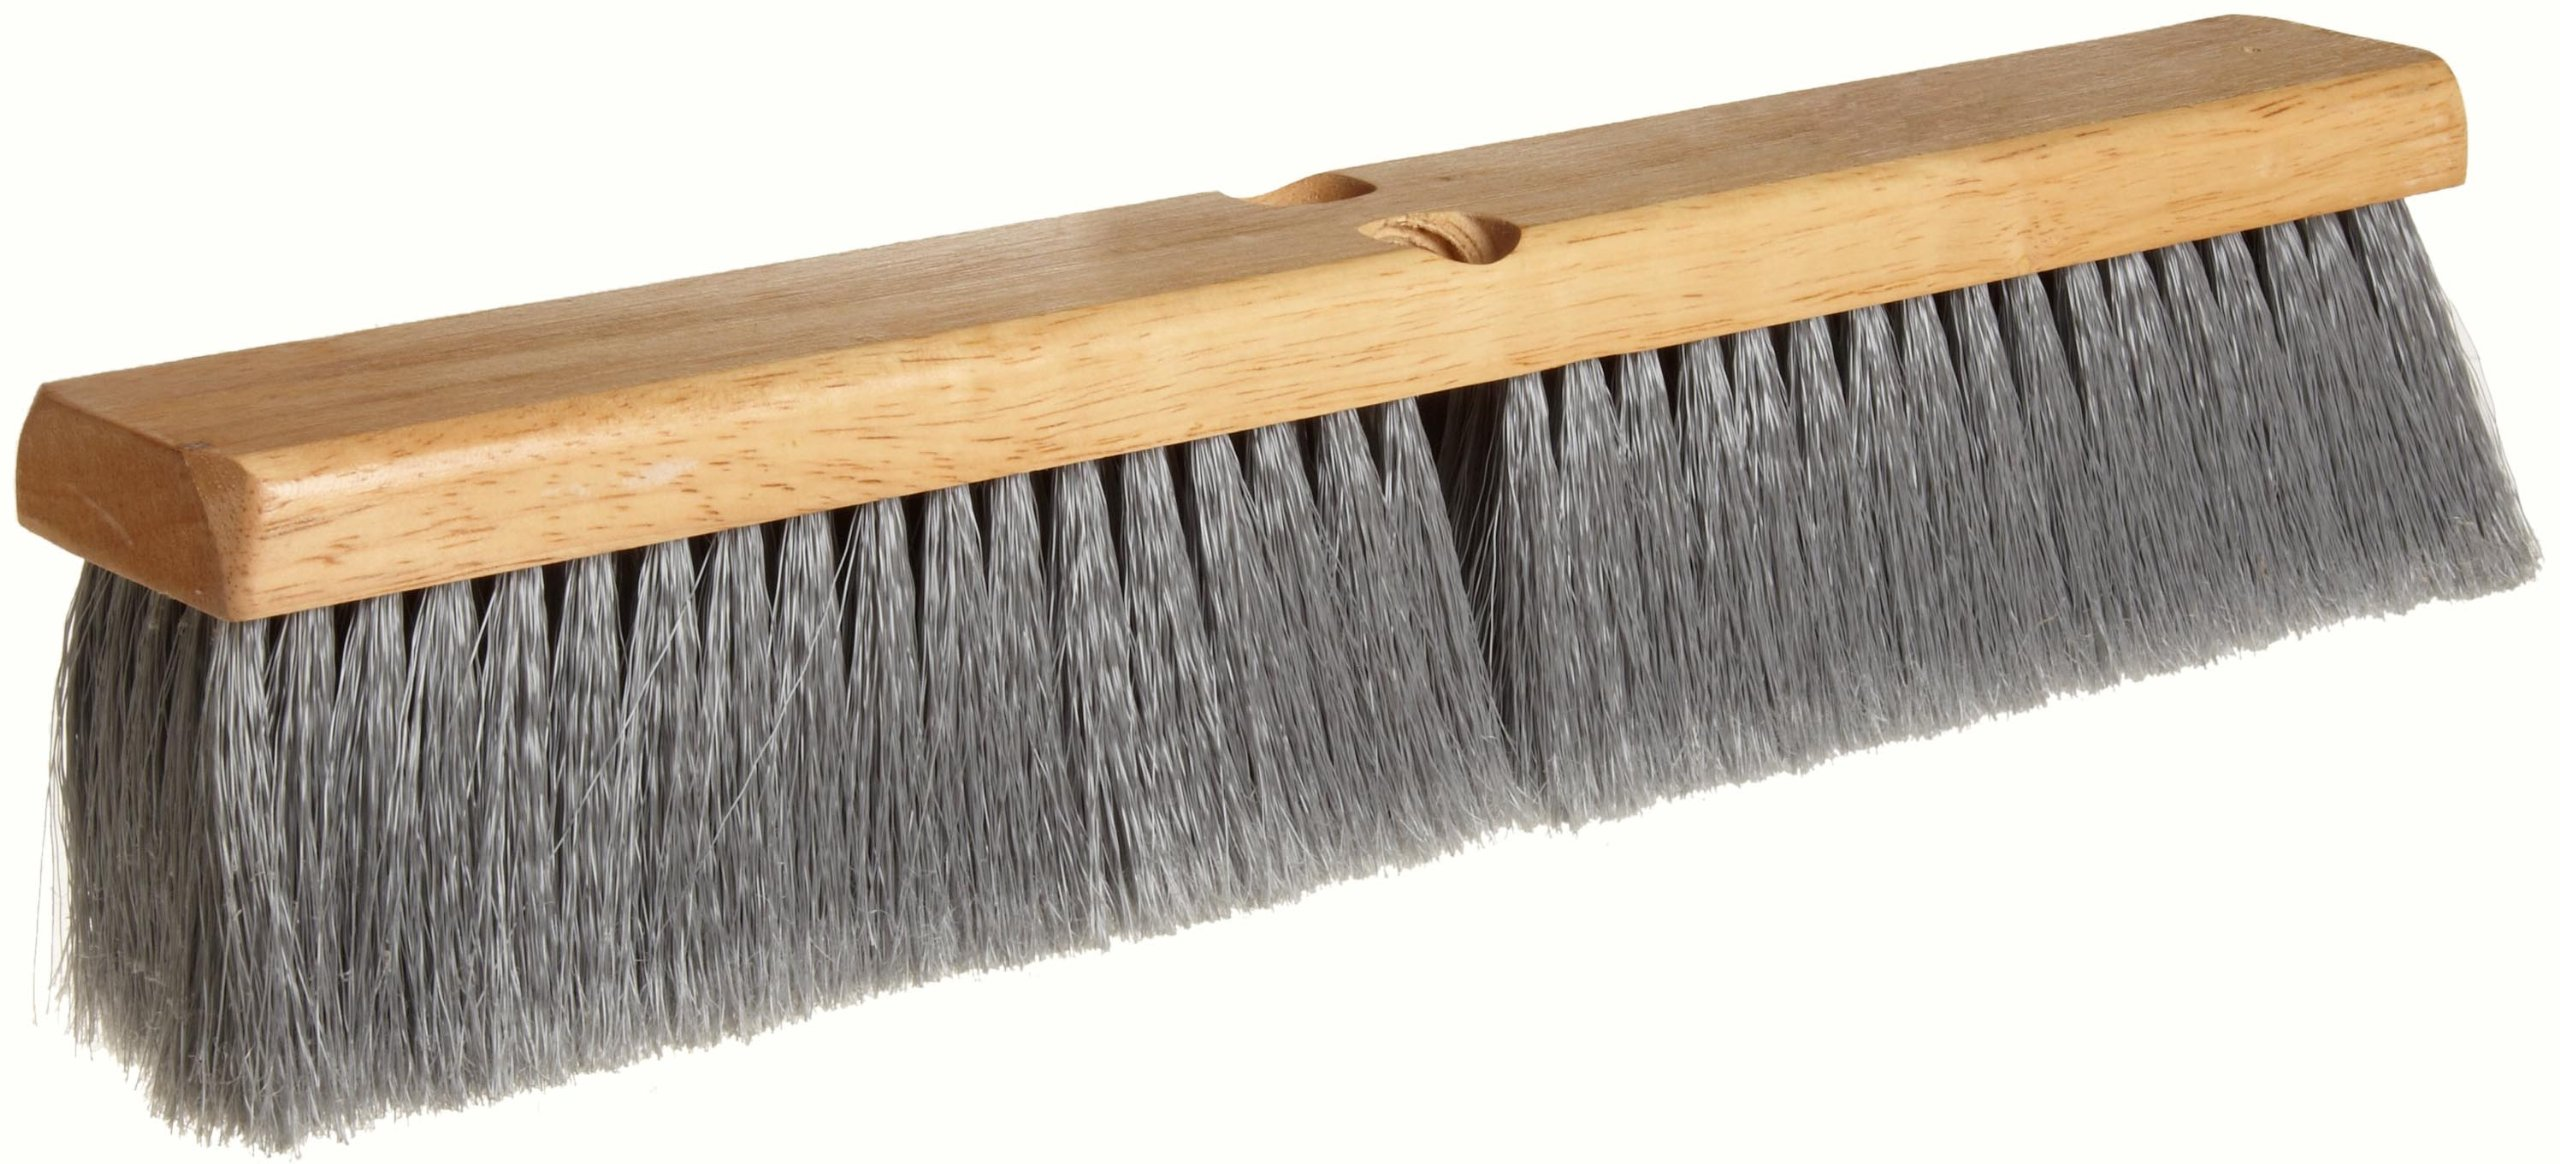 Weiler 42041 Polystyrene Fine Sweep Floor Brush, 2-1/2'' Handle Width, 18'' Overall Length, Natural by Weiler